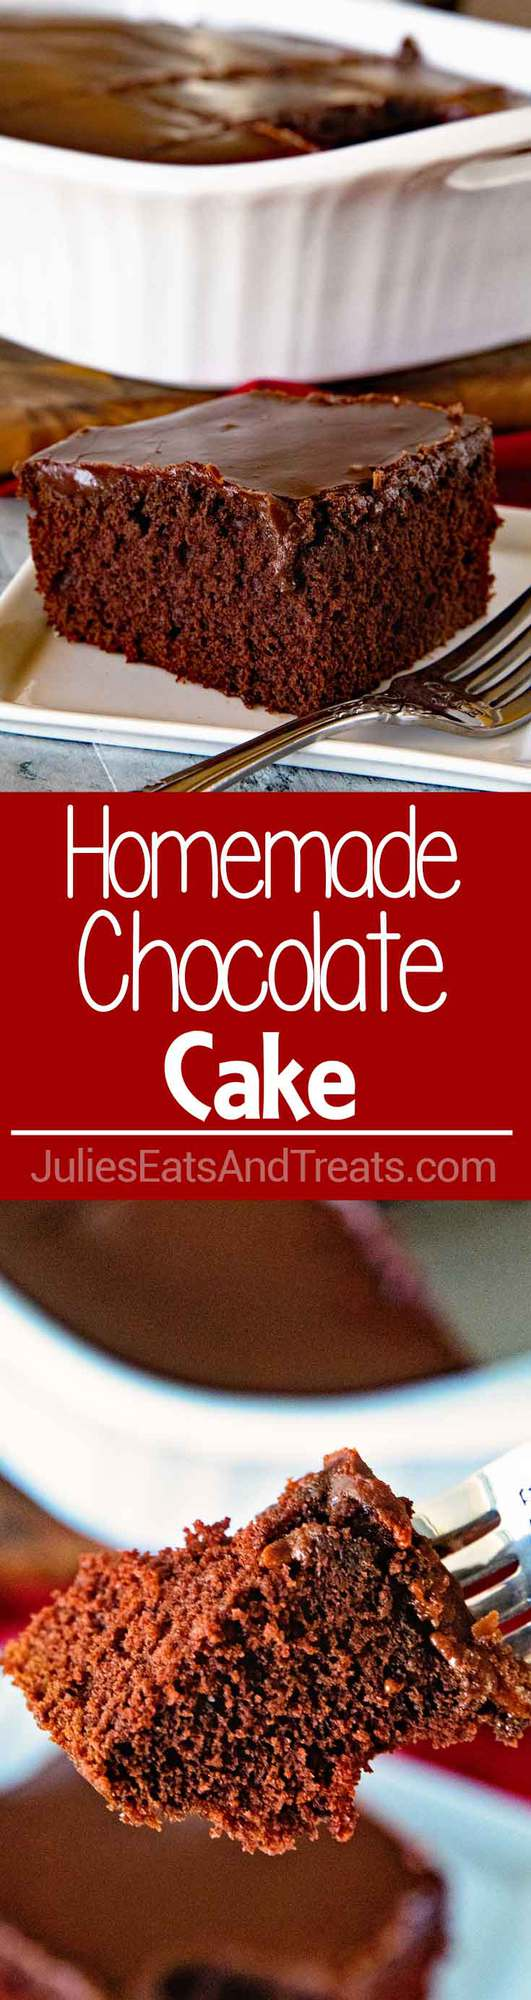 Chocolate Cake with Homemade Chocolate Frosting!